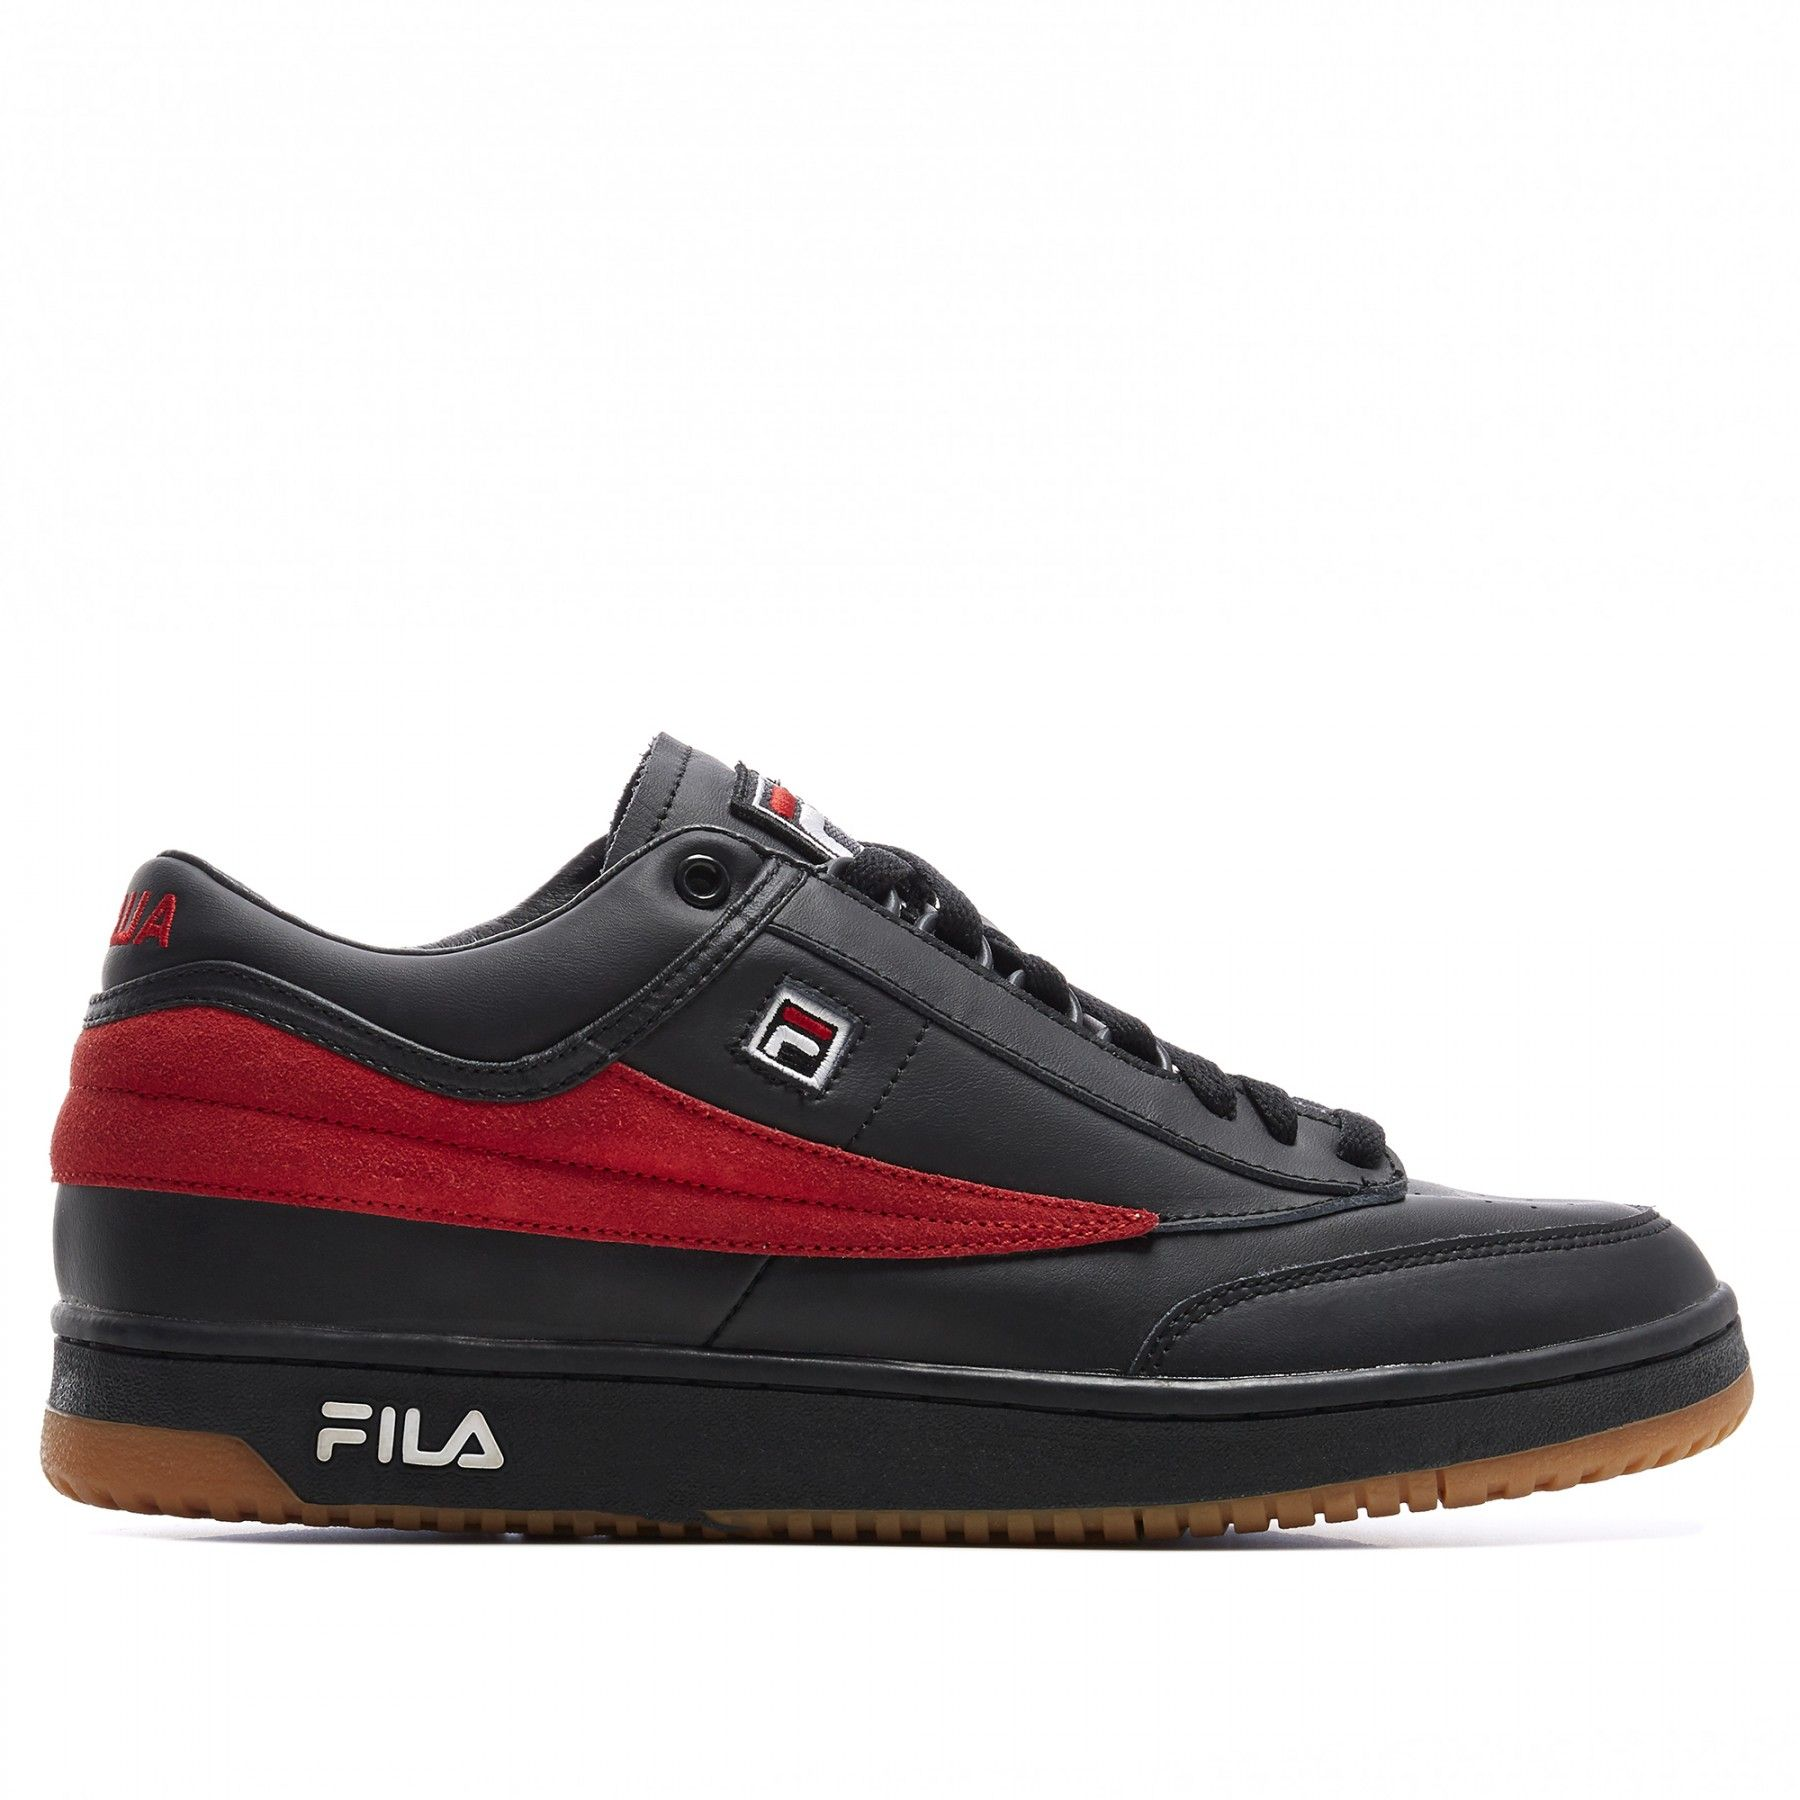 fila shoes green & red backgrounds with designs